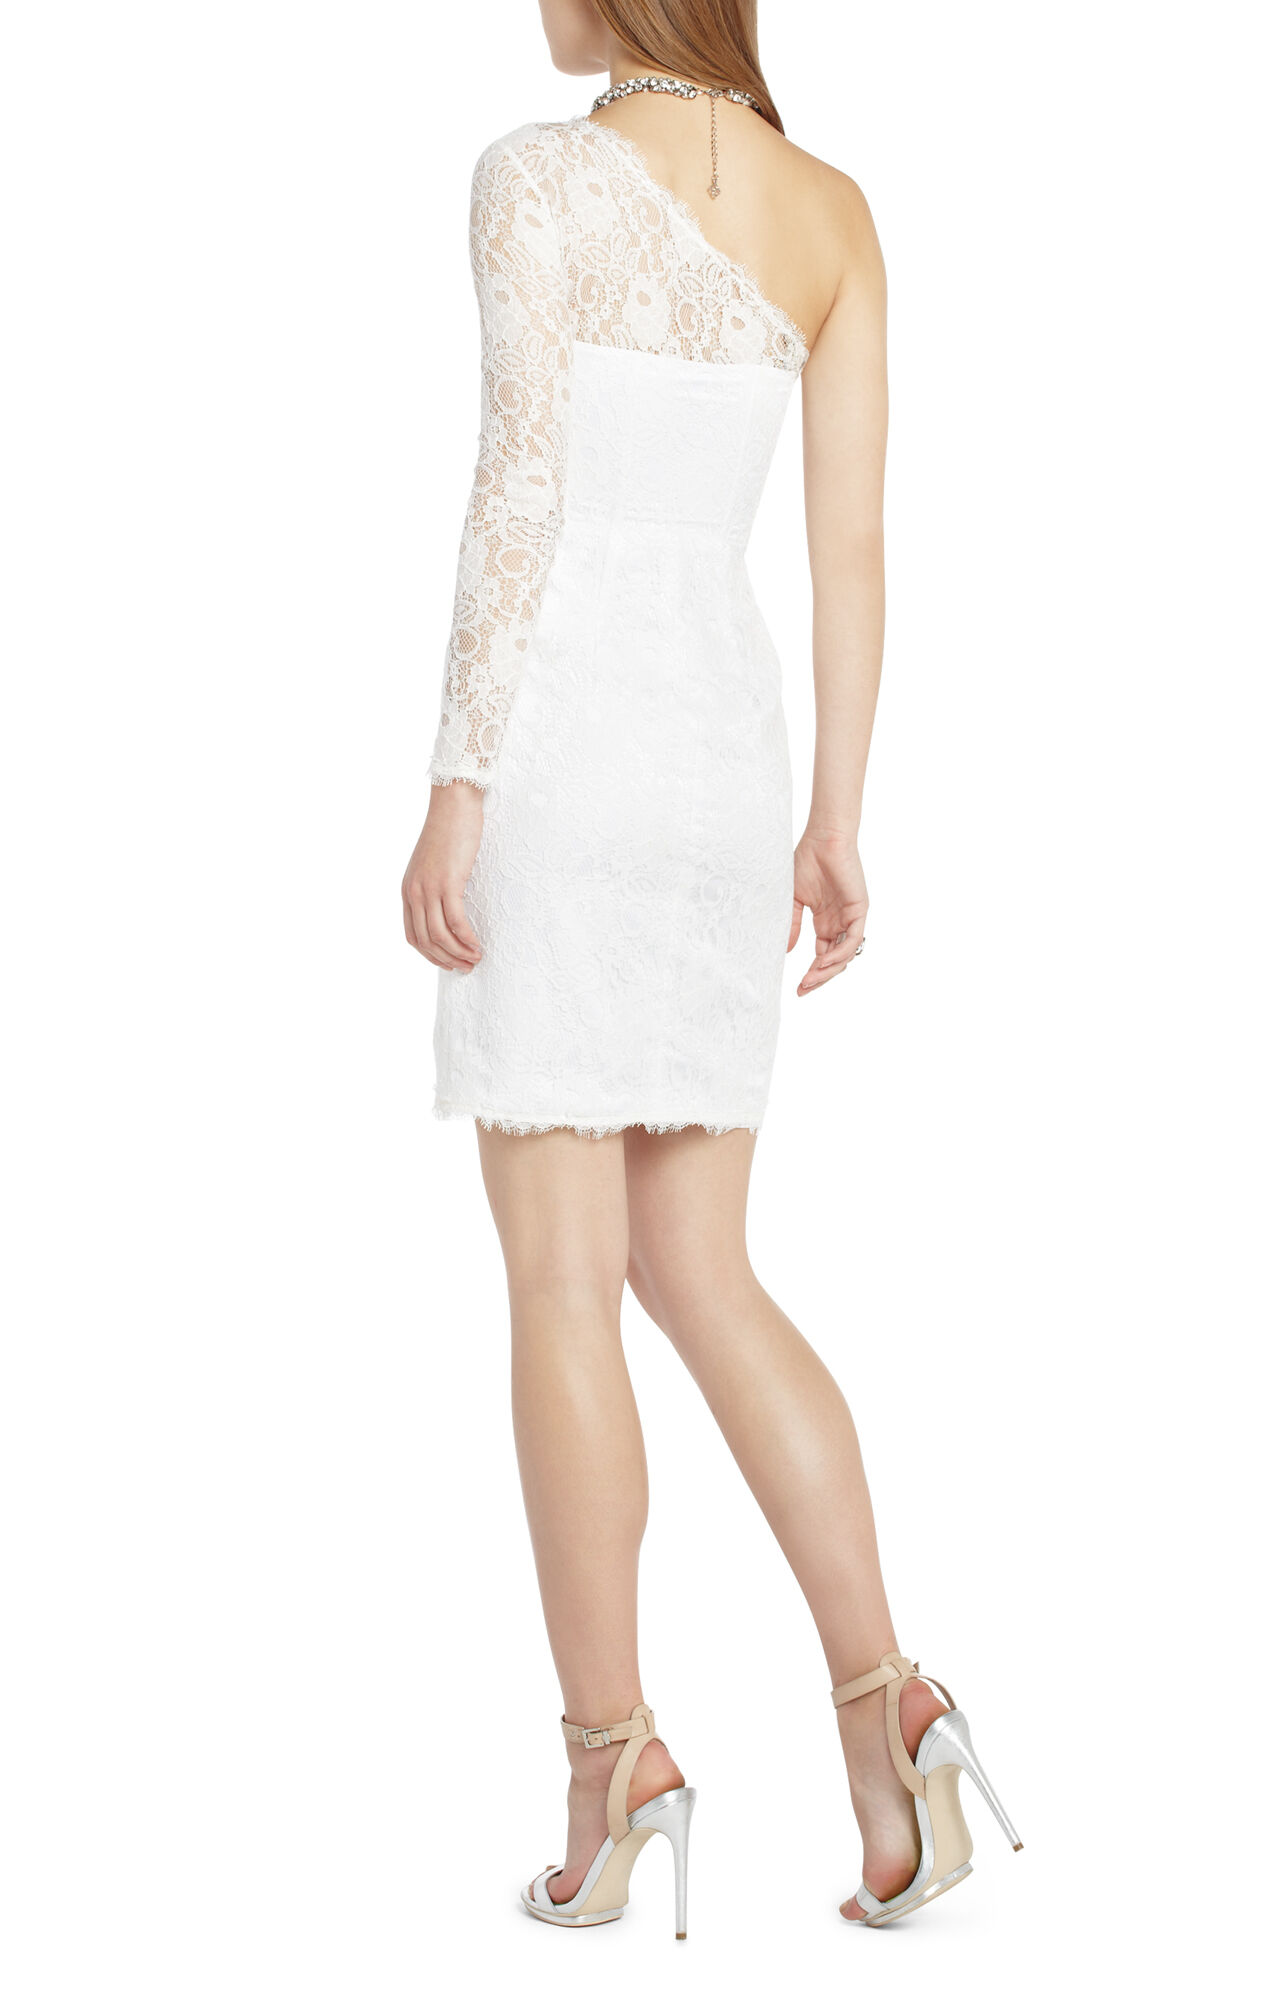 Arlena One-Shoulder Lace Cocktail Dress